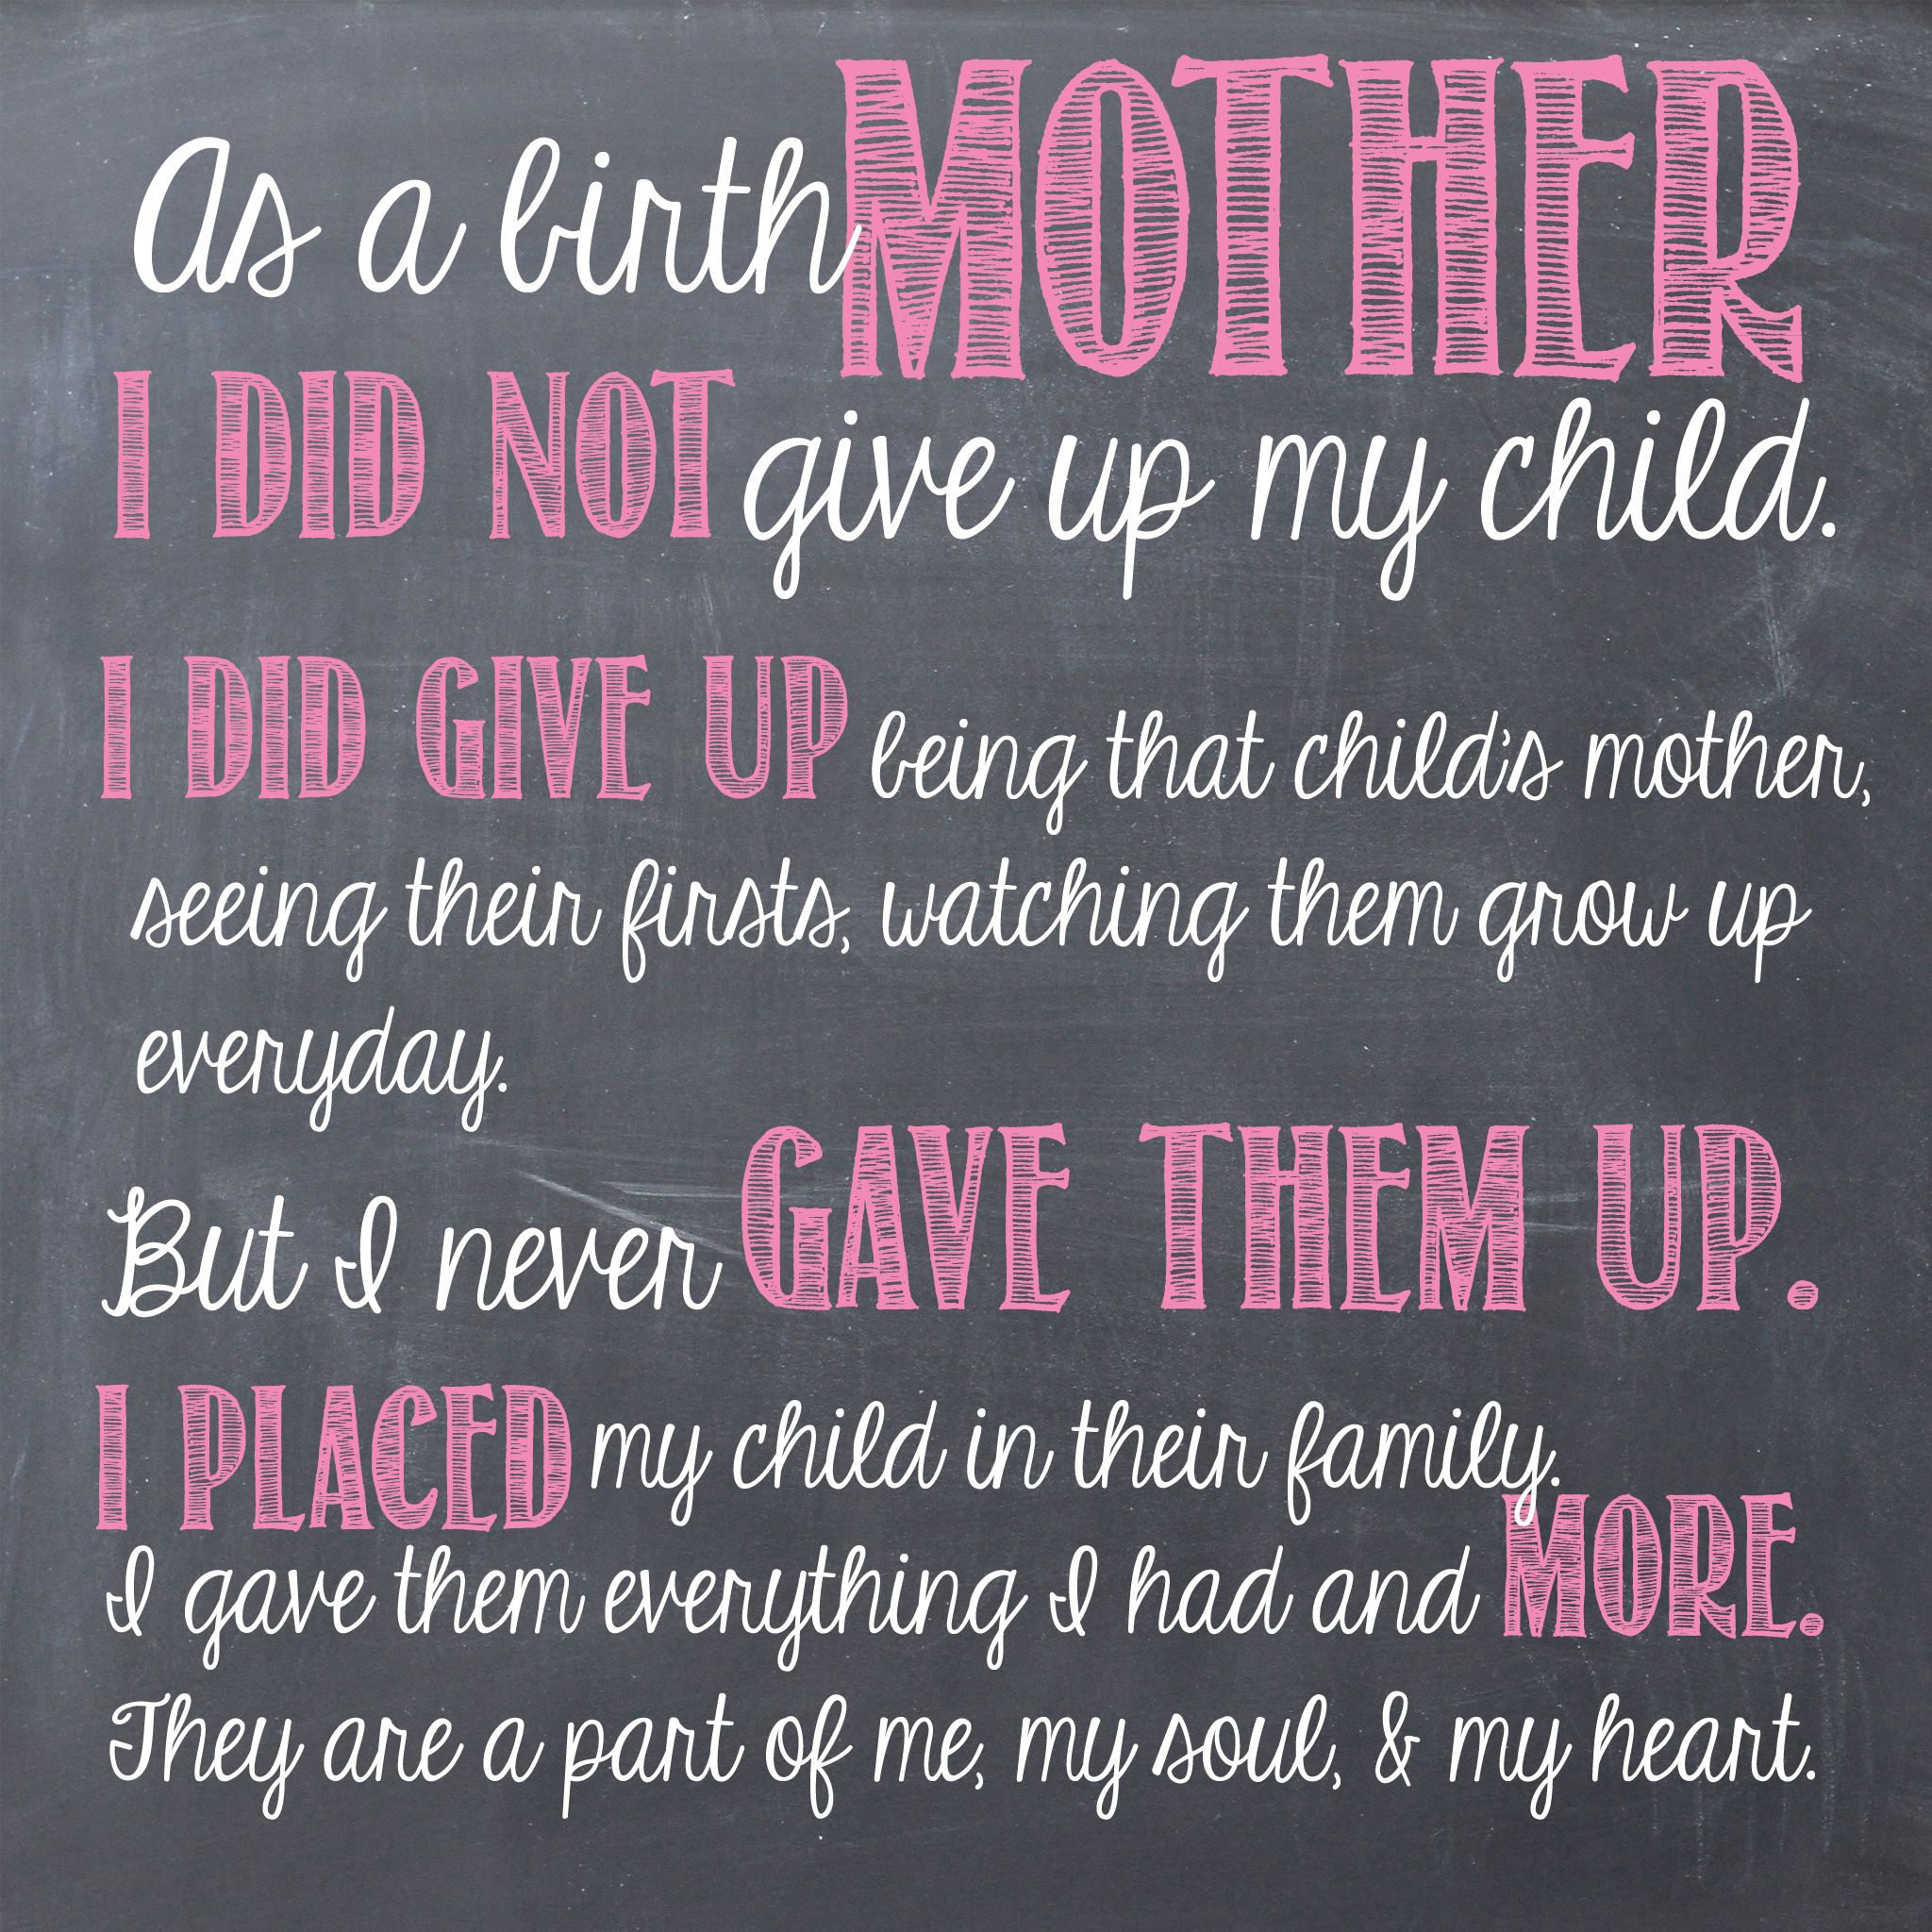 Quotes About Adoption Found On Google From Pinterest  Adoption Reunion  Pinterest